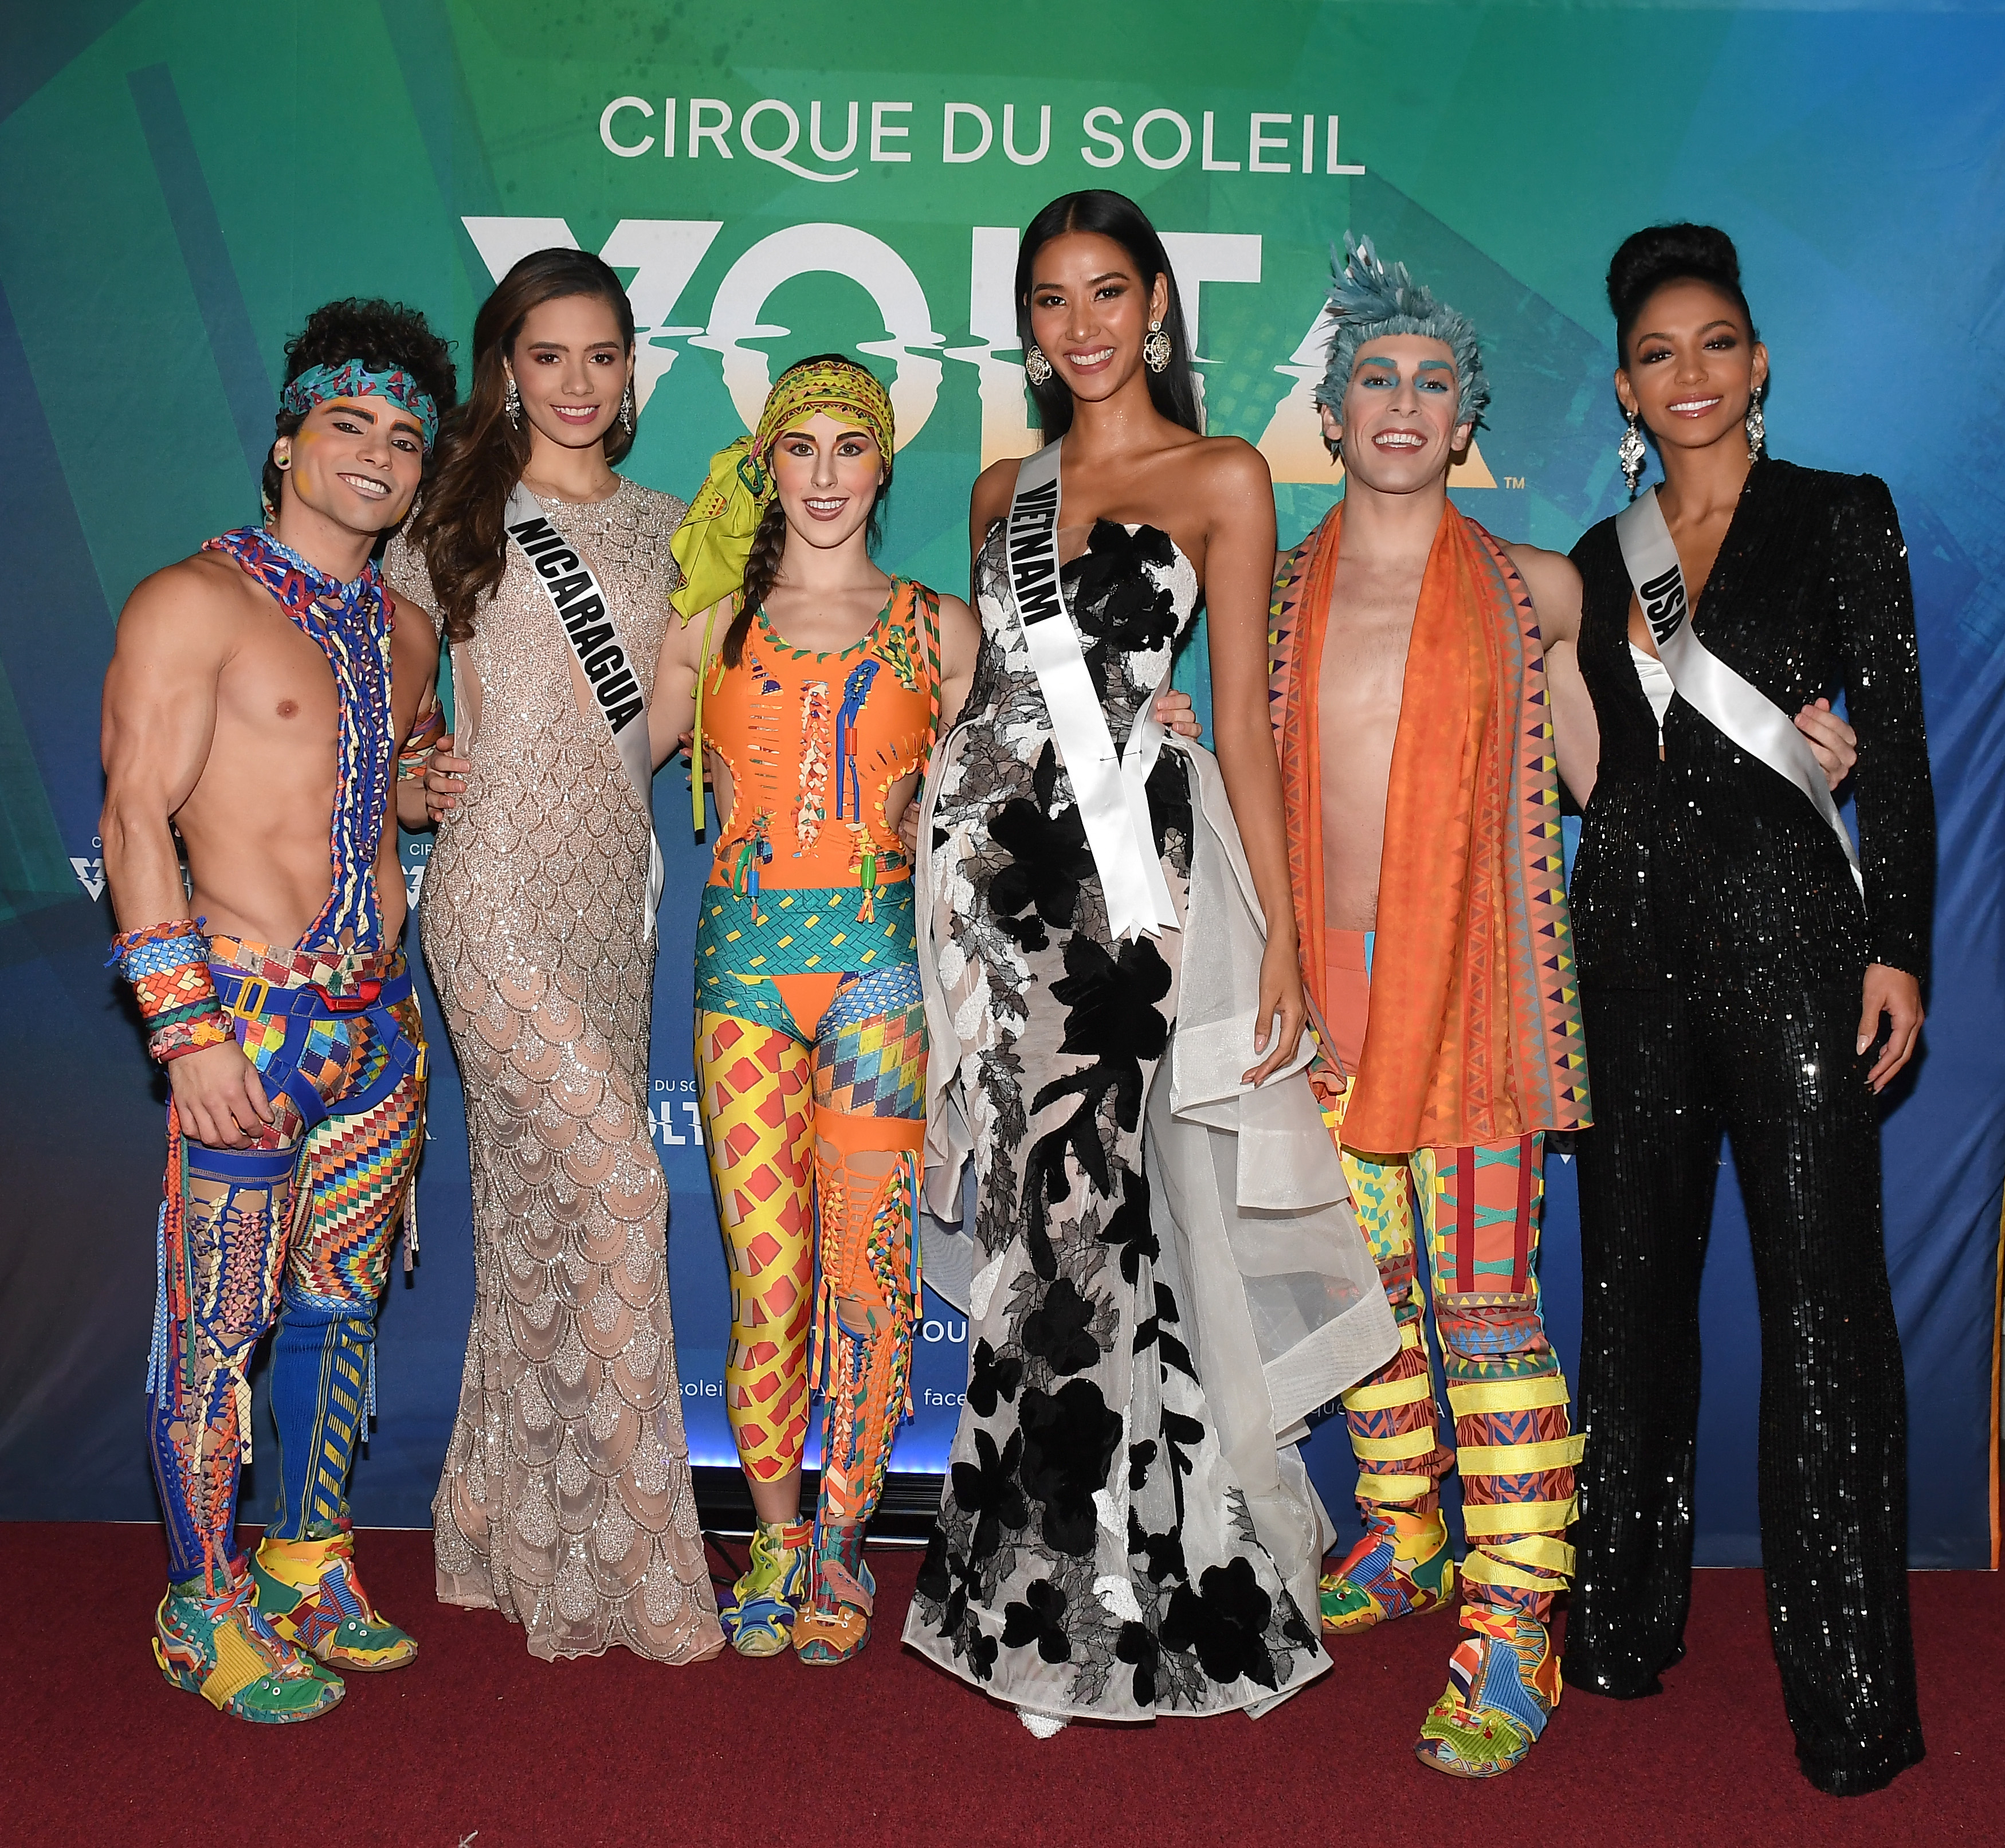 Miss Nicaragua Inés López, Miss Vietnam Hoang Thuy, and Miss USA Cheslie Kryst pose with cast members of Volta during Volta By Cirque Du Soleil at Atlantic Station on December 04, 2019 in Atlanta, Georgia. Photo: AFP